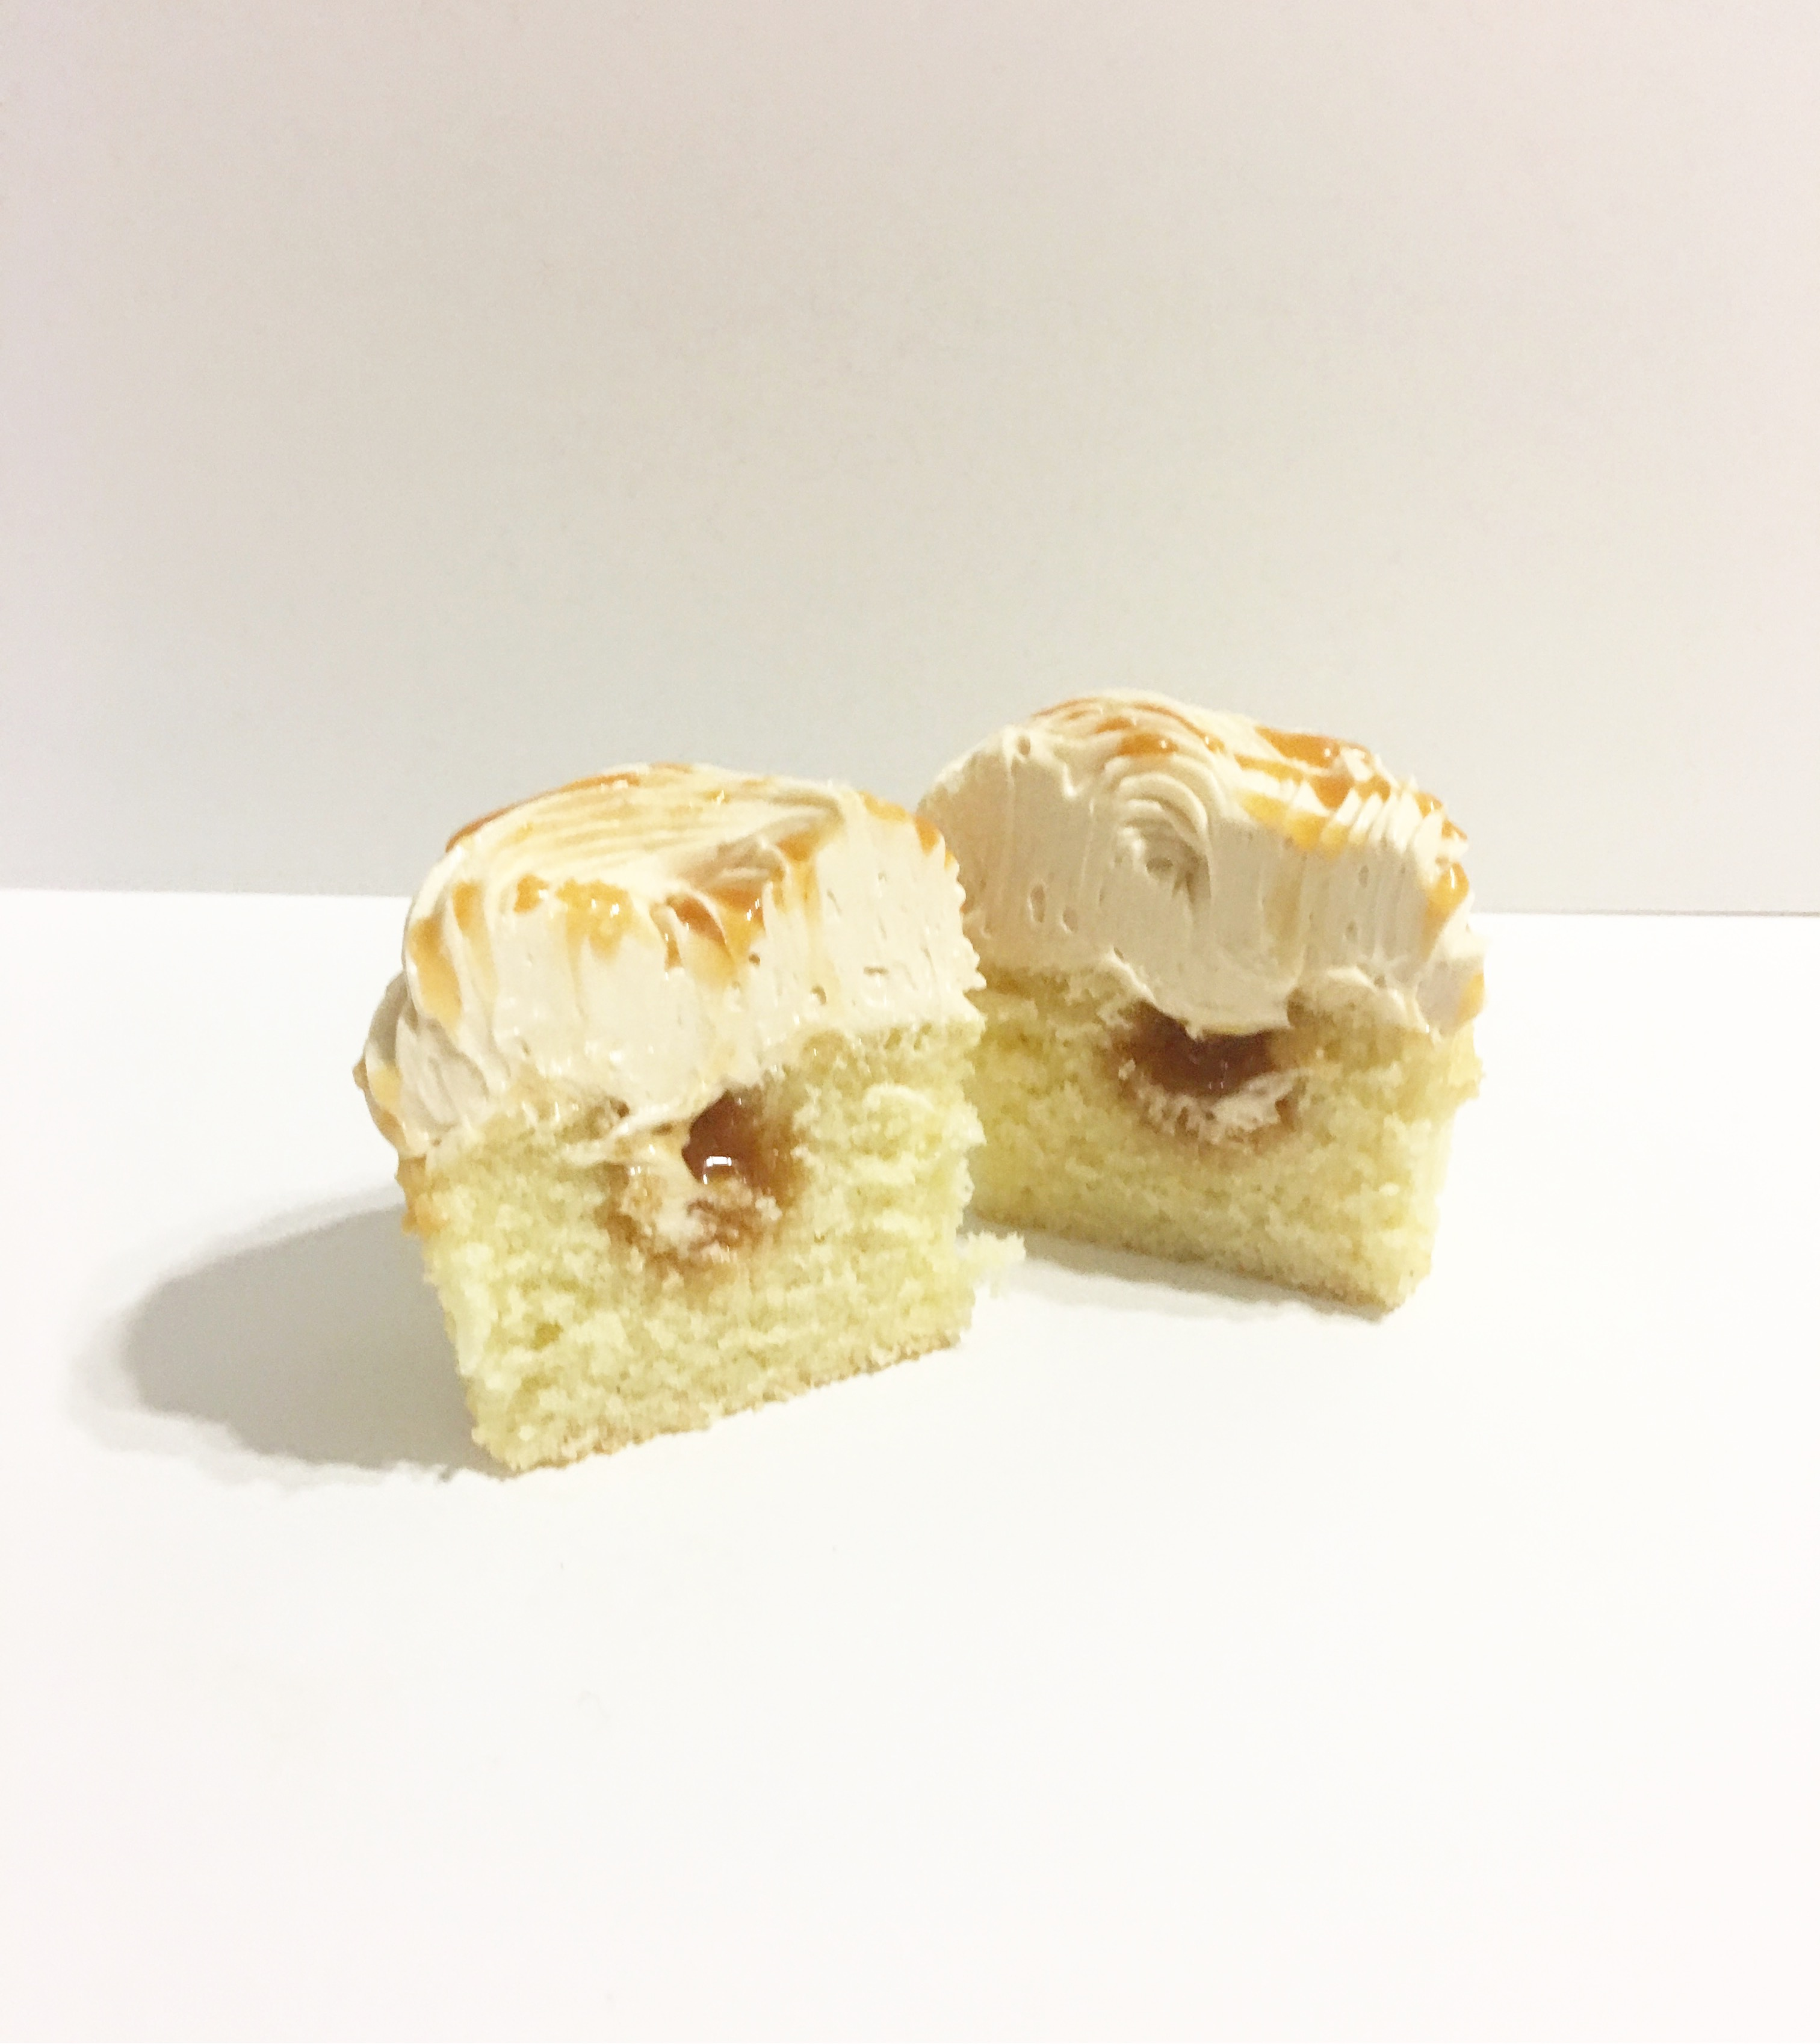 Hawaiian Sea Salt Caramel Cupcake